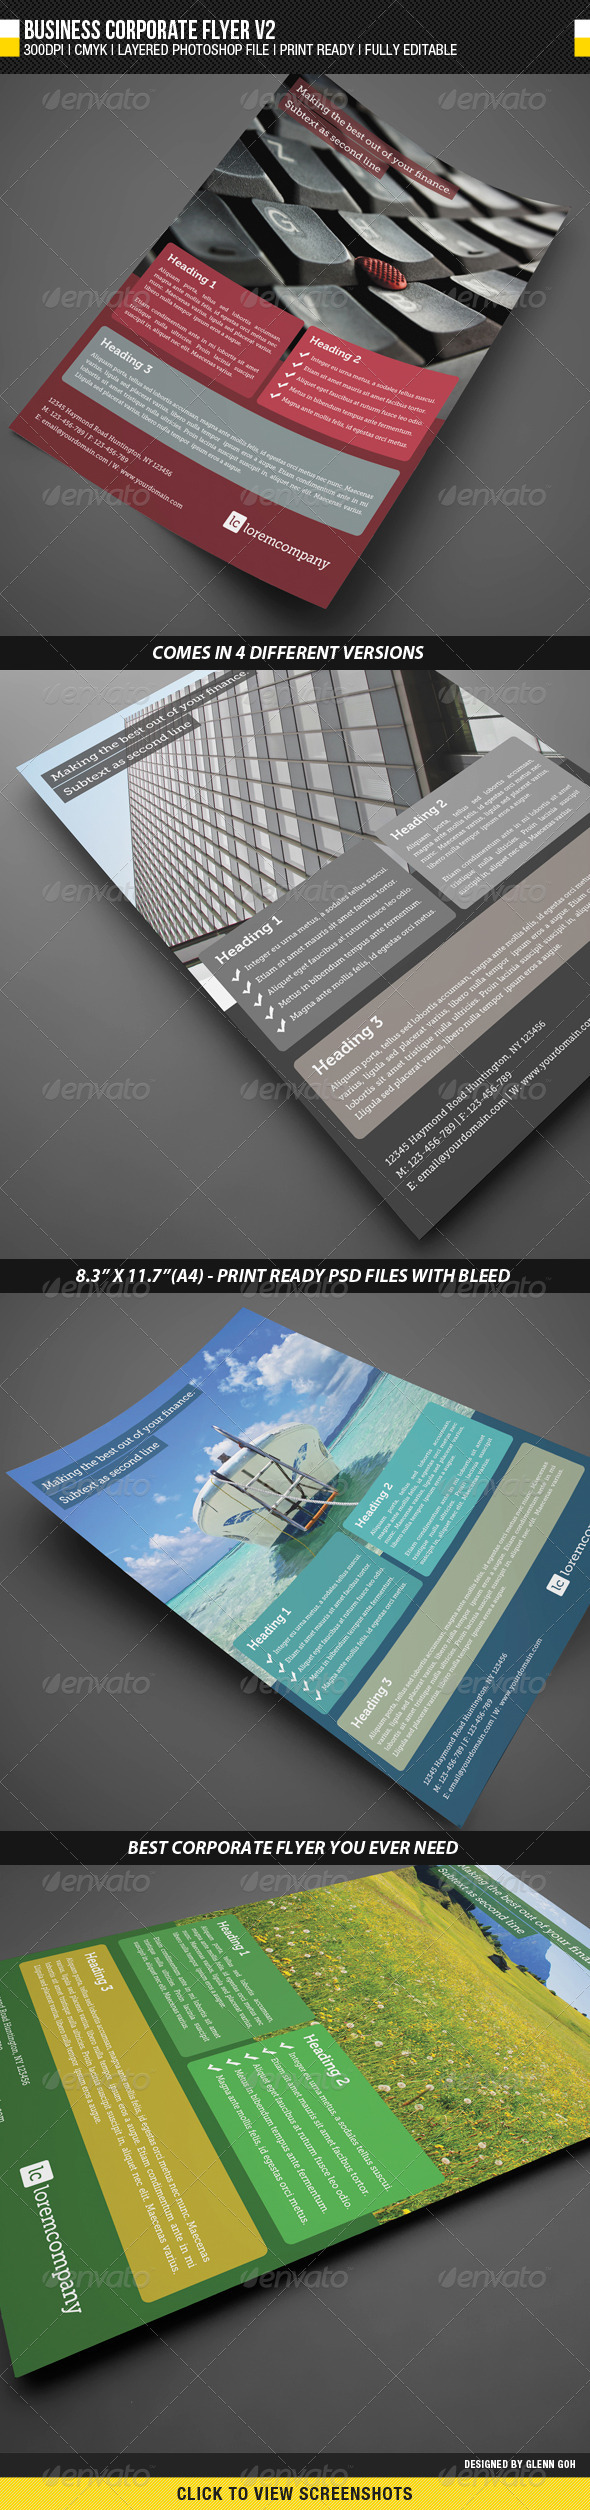 Business Corporate Flyer V2 - Corporate Flyers